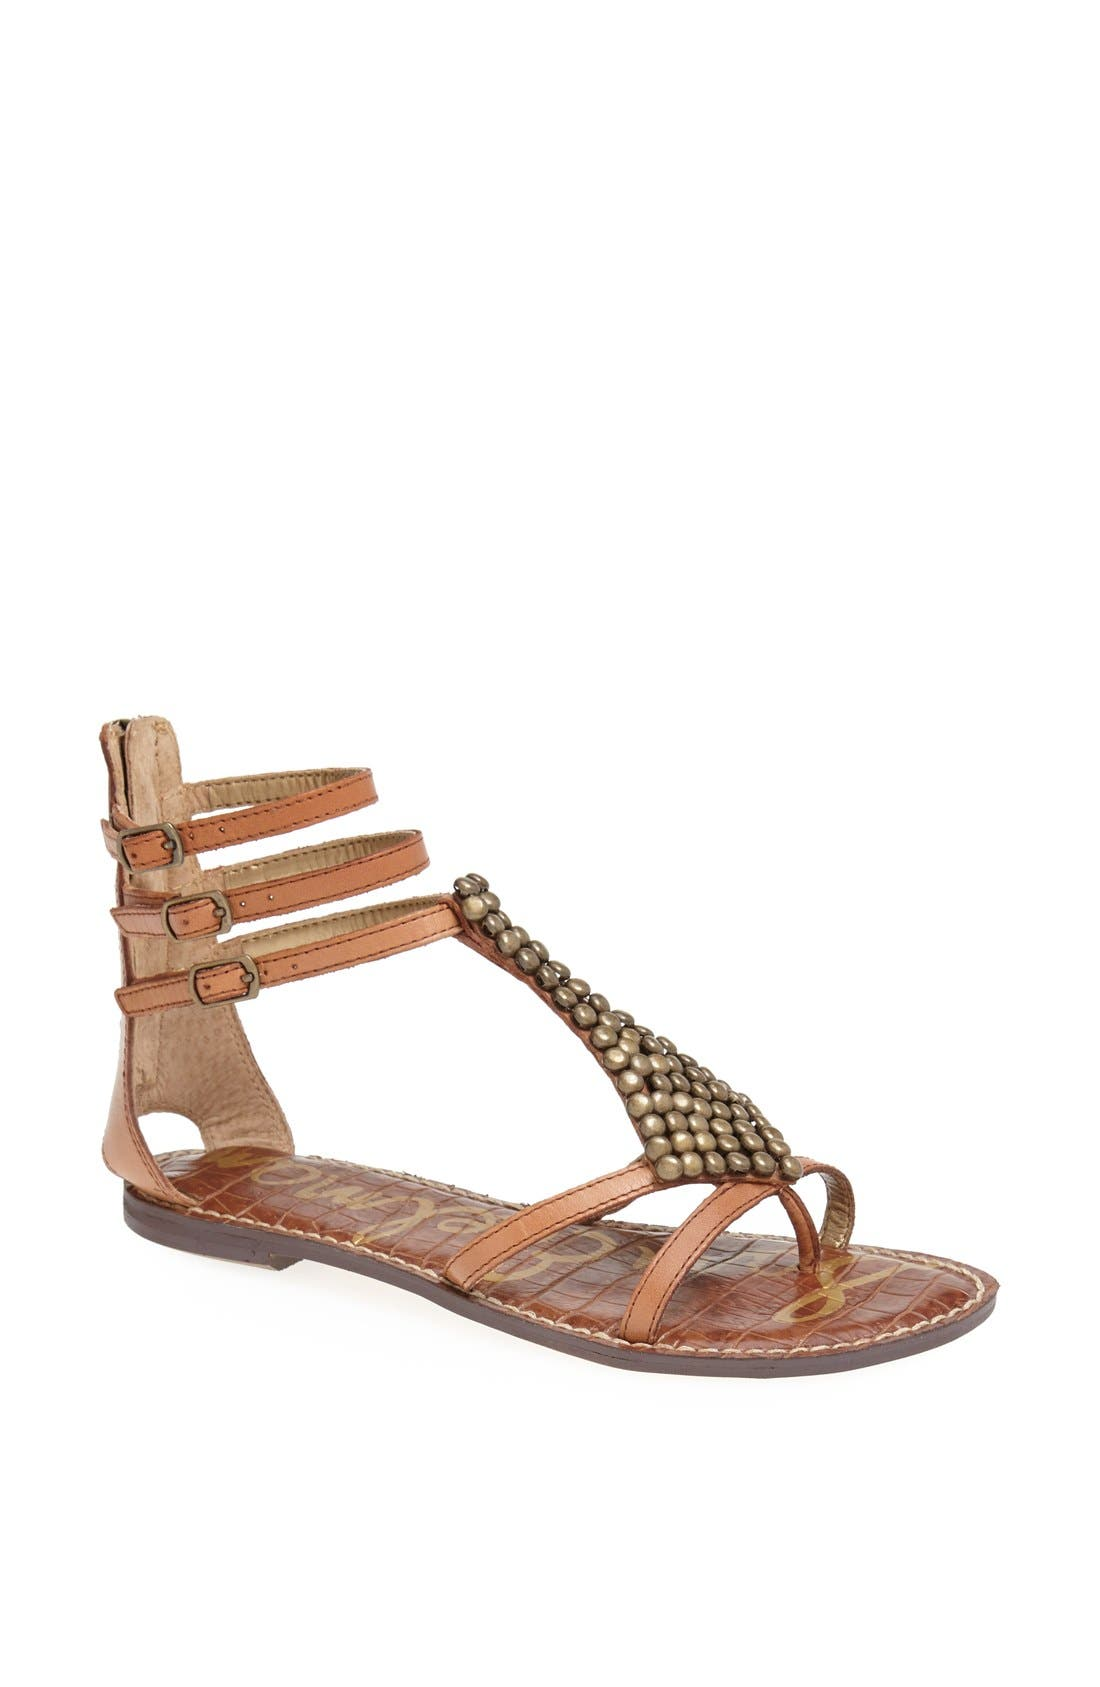 Alternate Image 1 Selected - Sam Edelman 'Ginger' Sandal